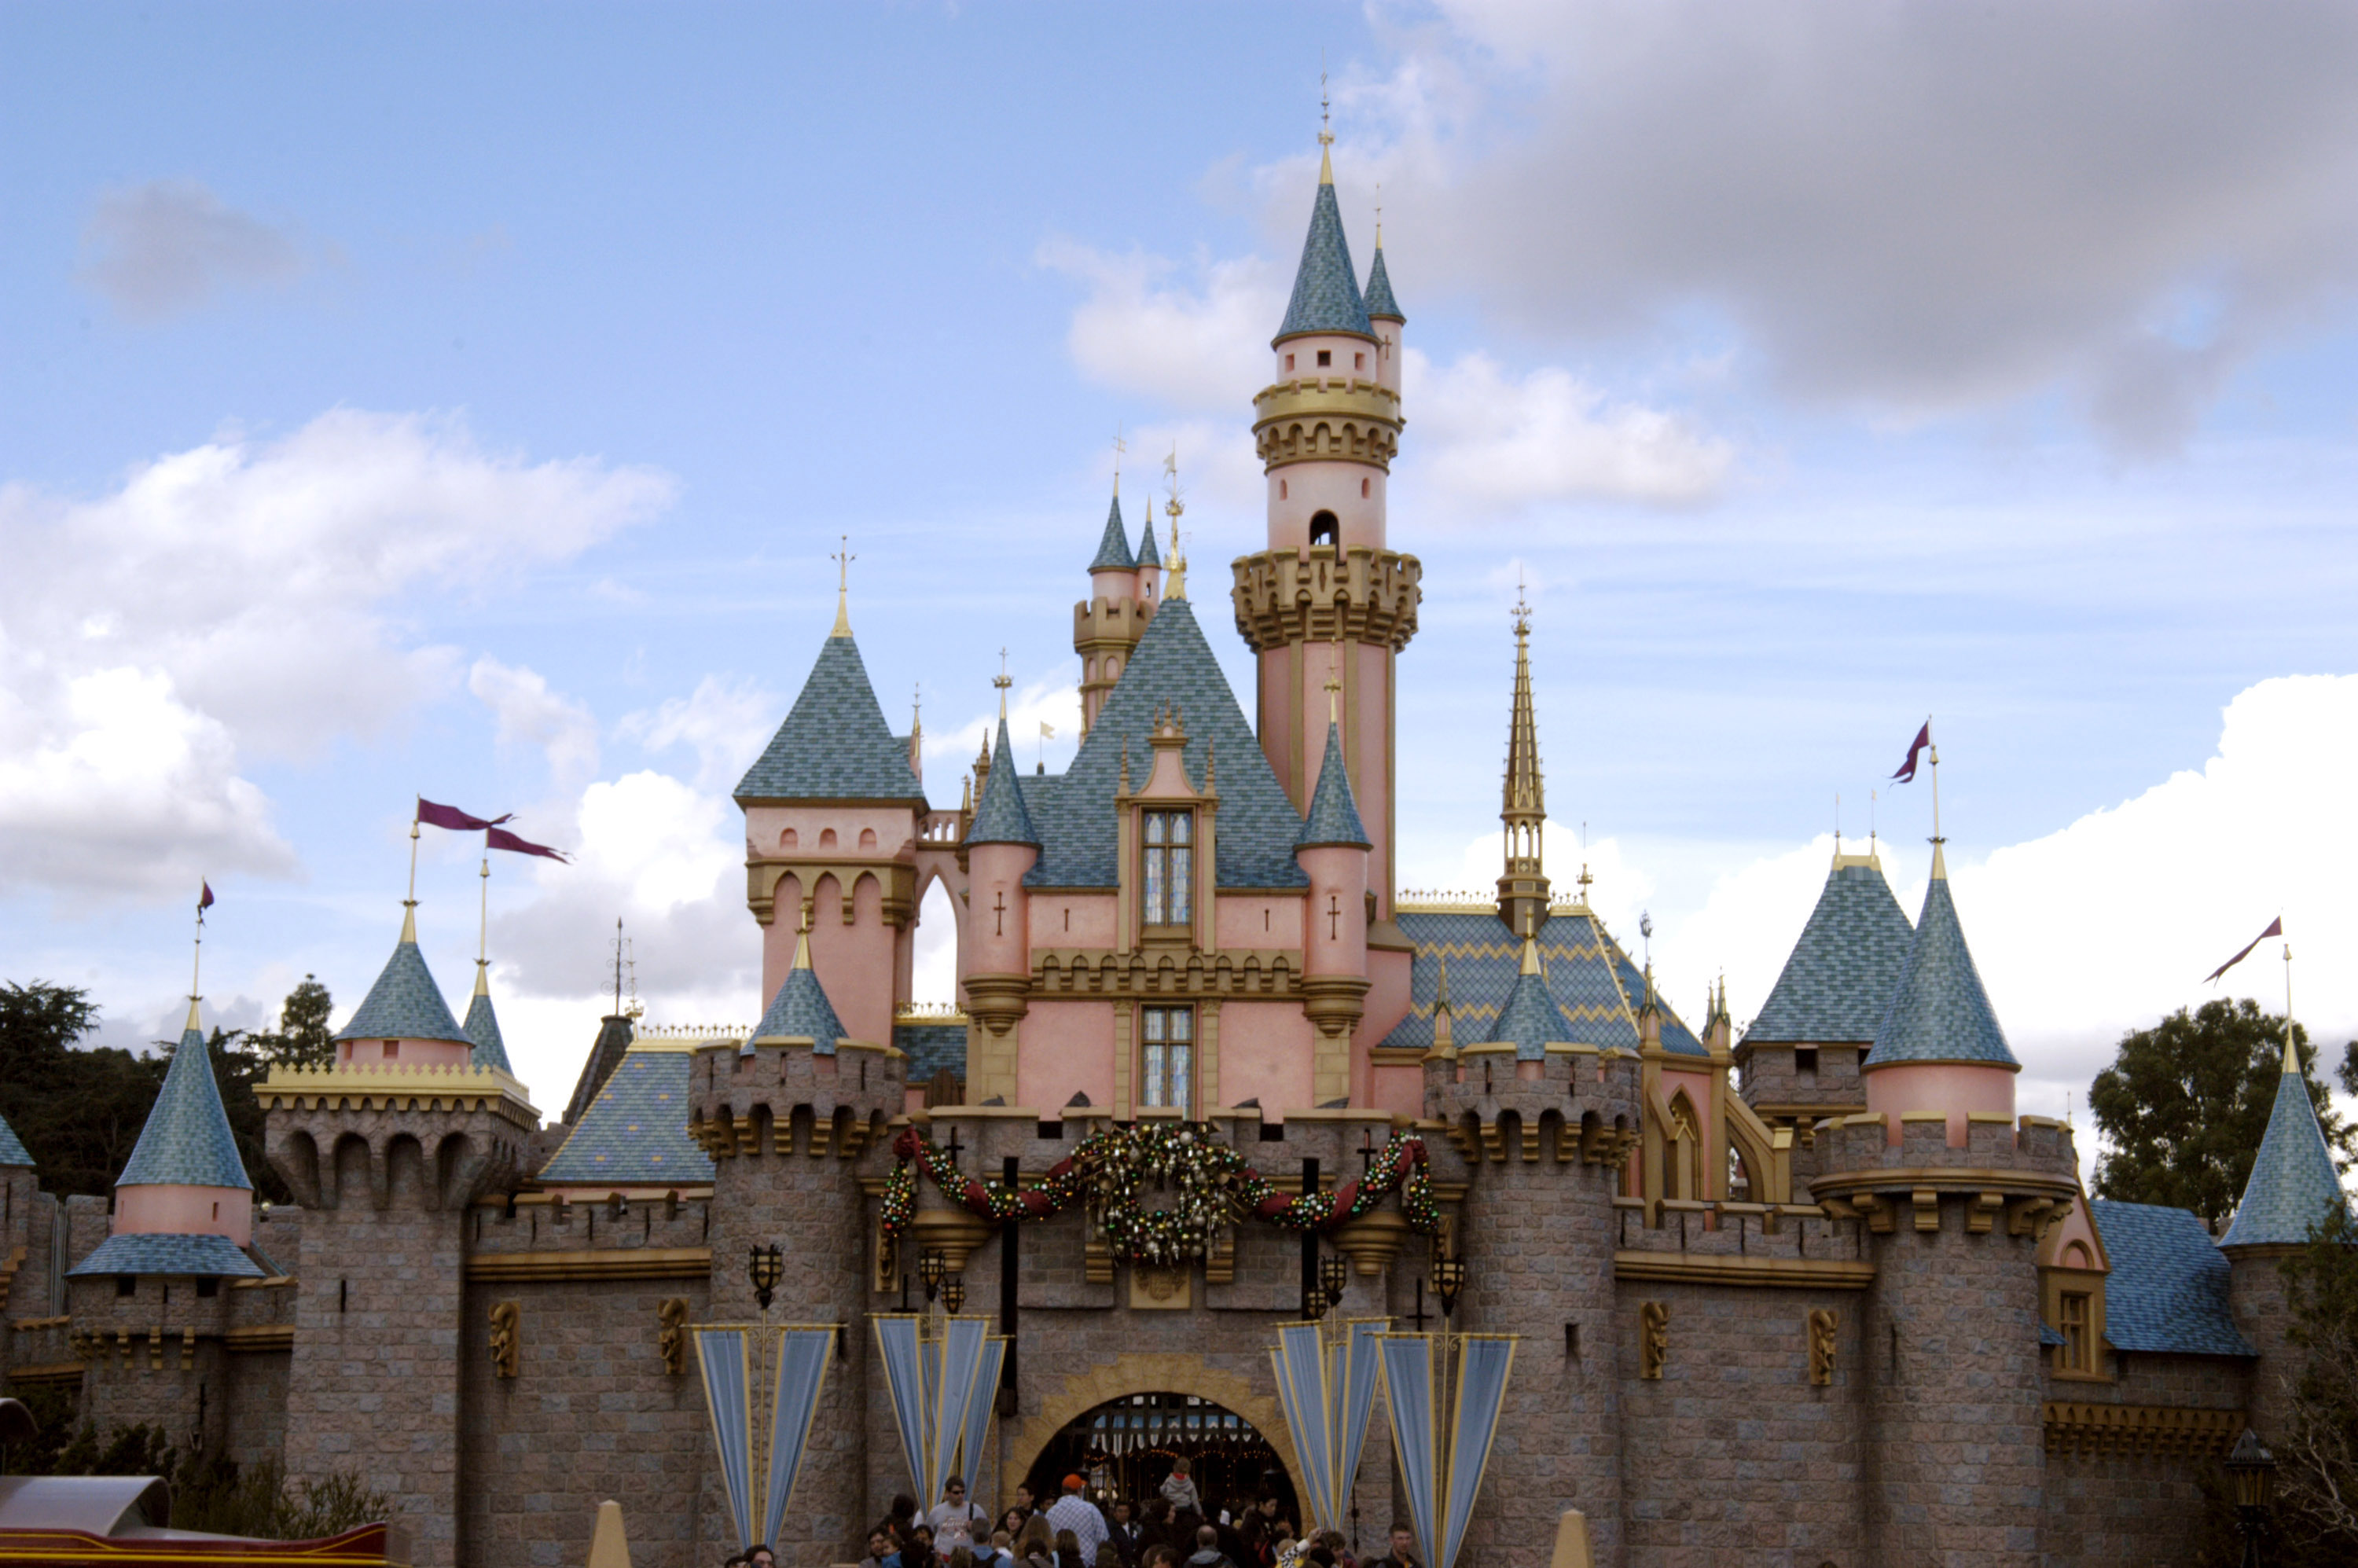 Disneyland is making some major changers that will make getting to the park *so* much easier